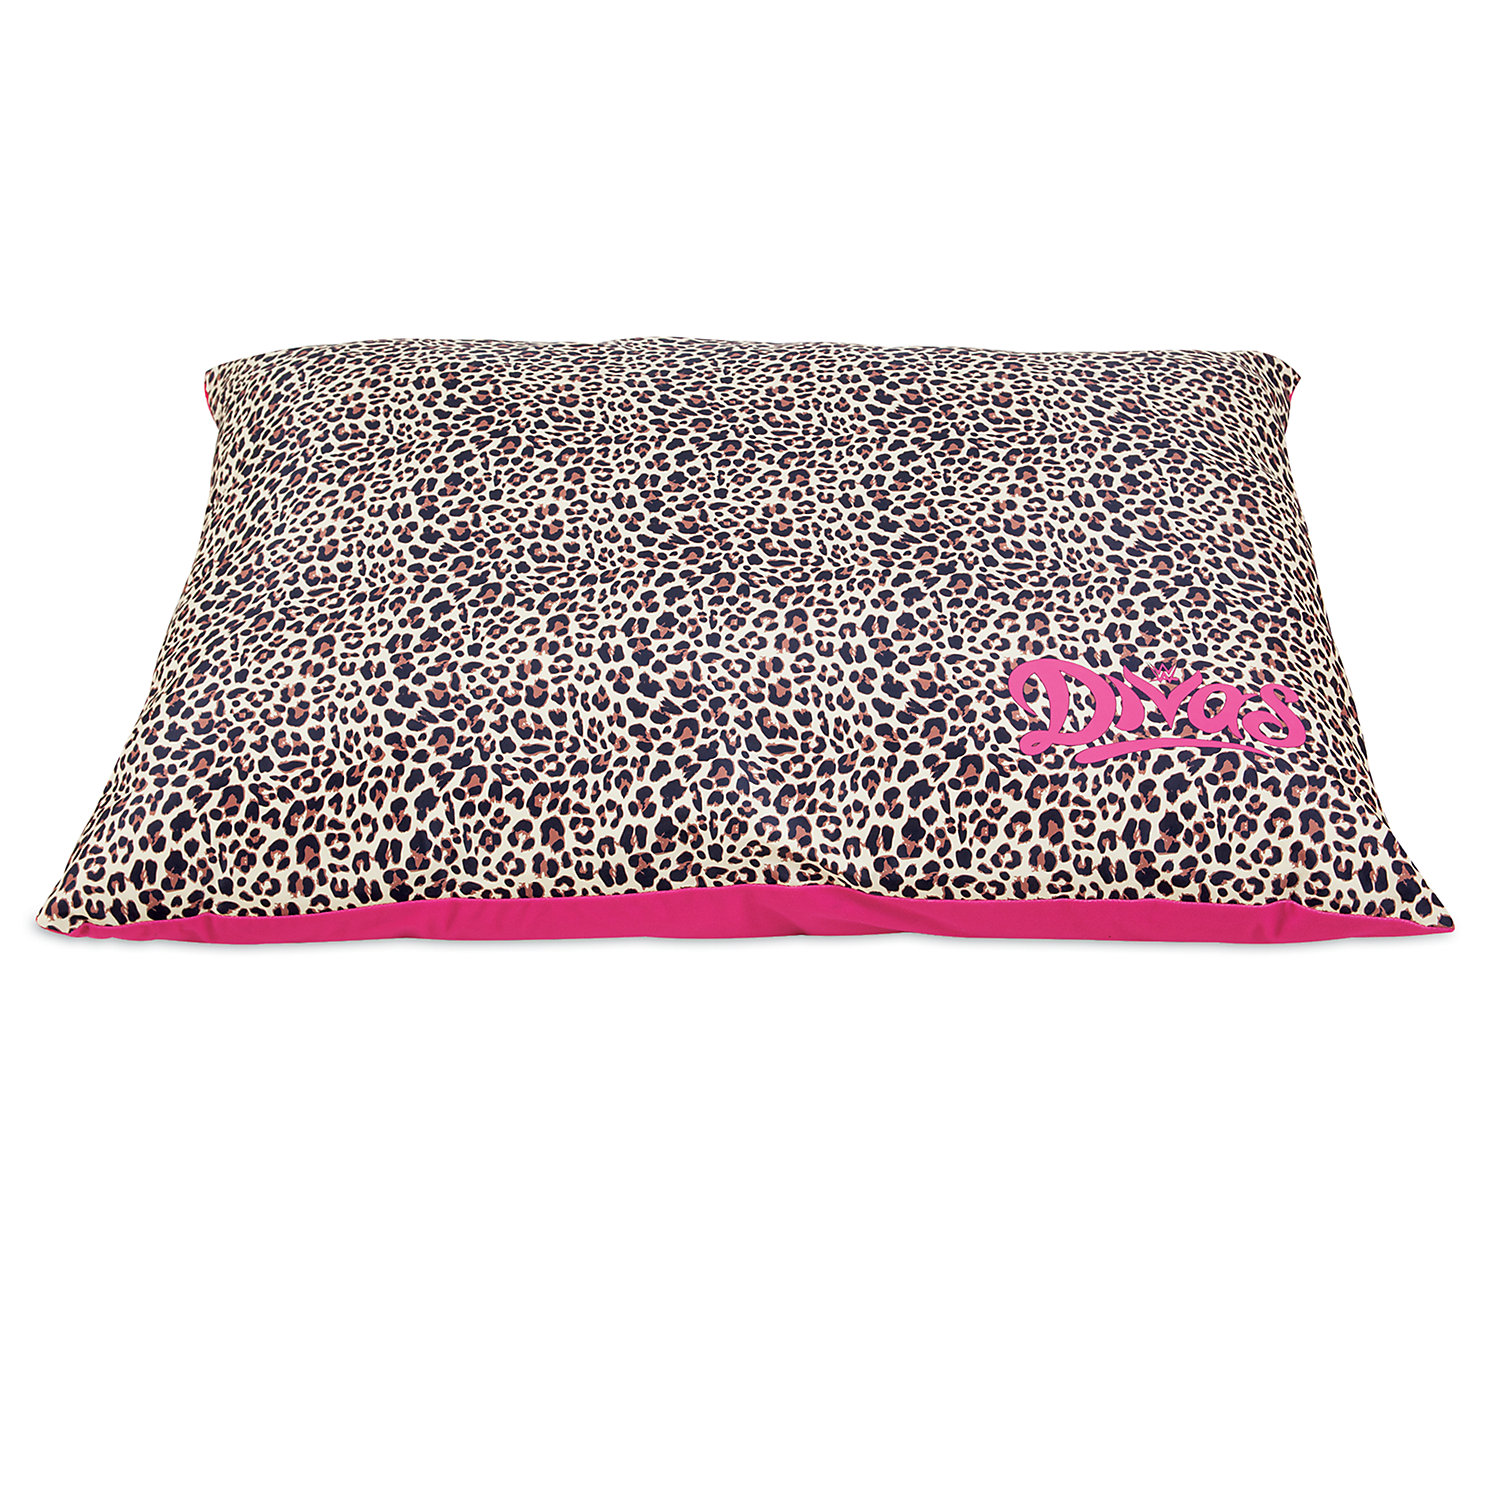 Image of WWE Divas Pillow Dog Bed in Pink